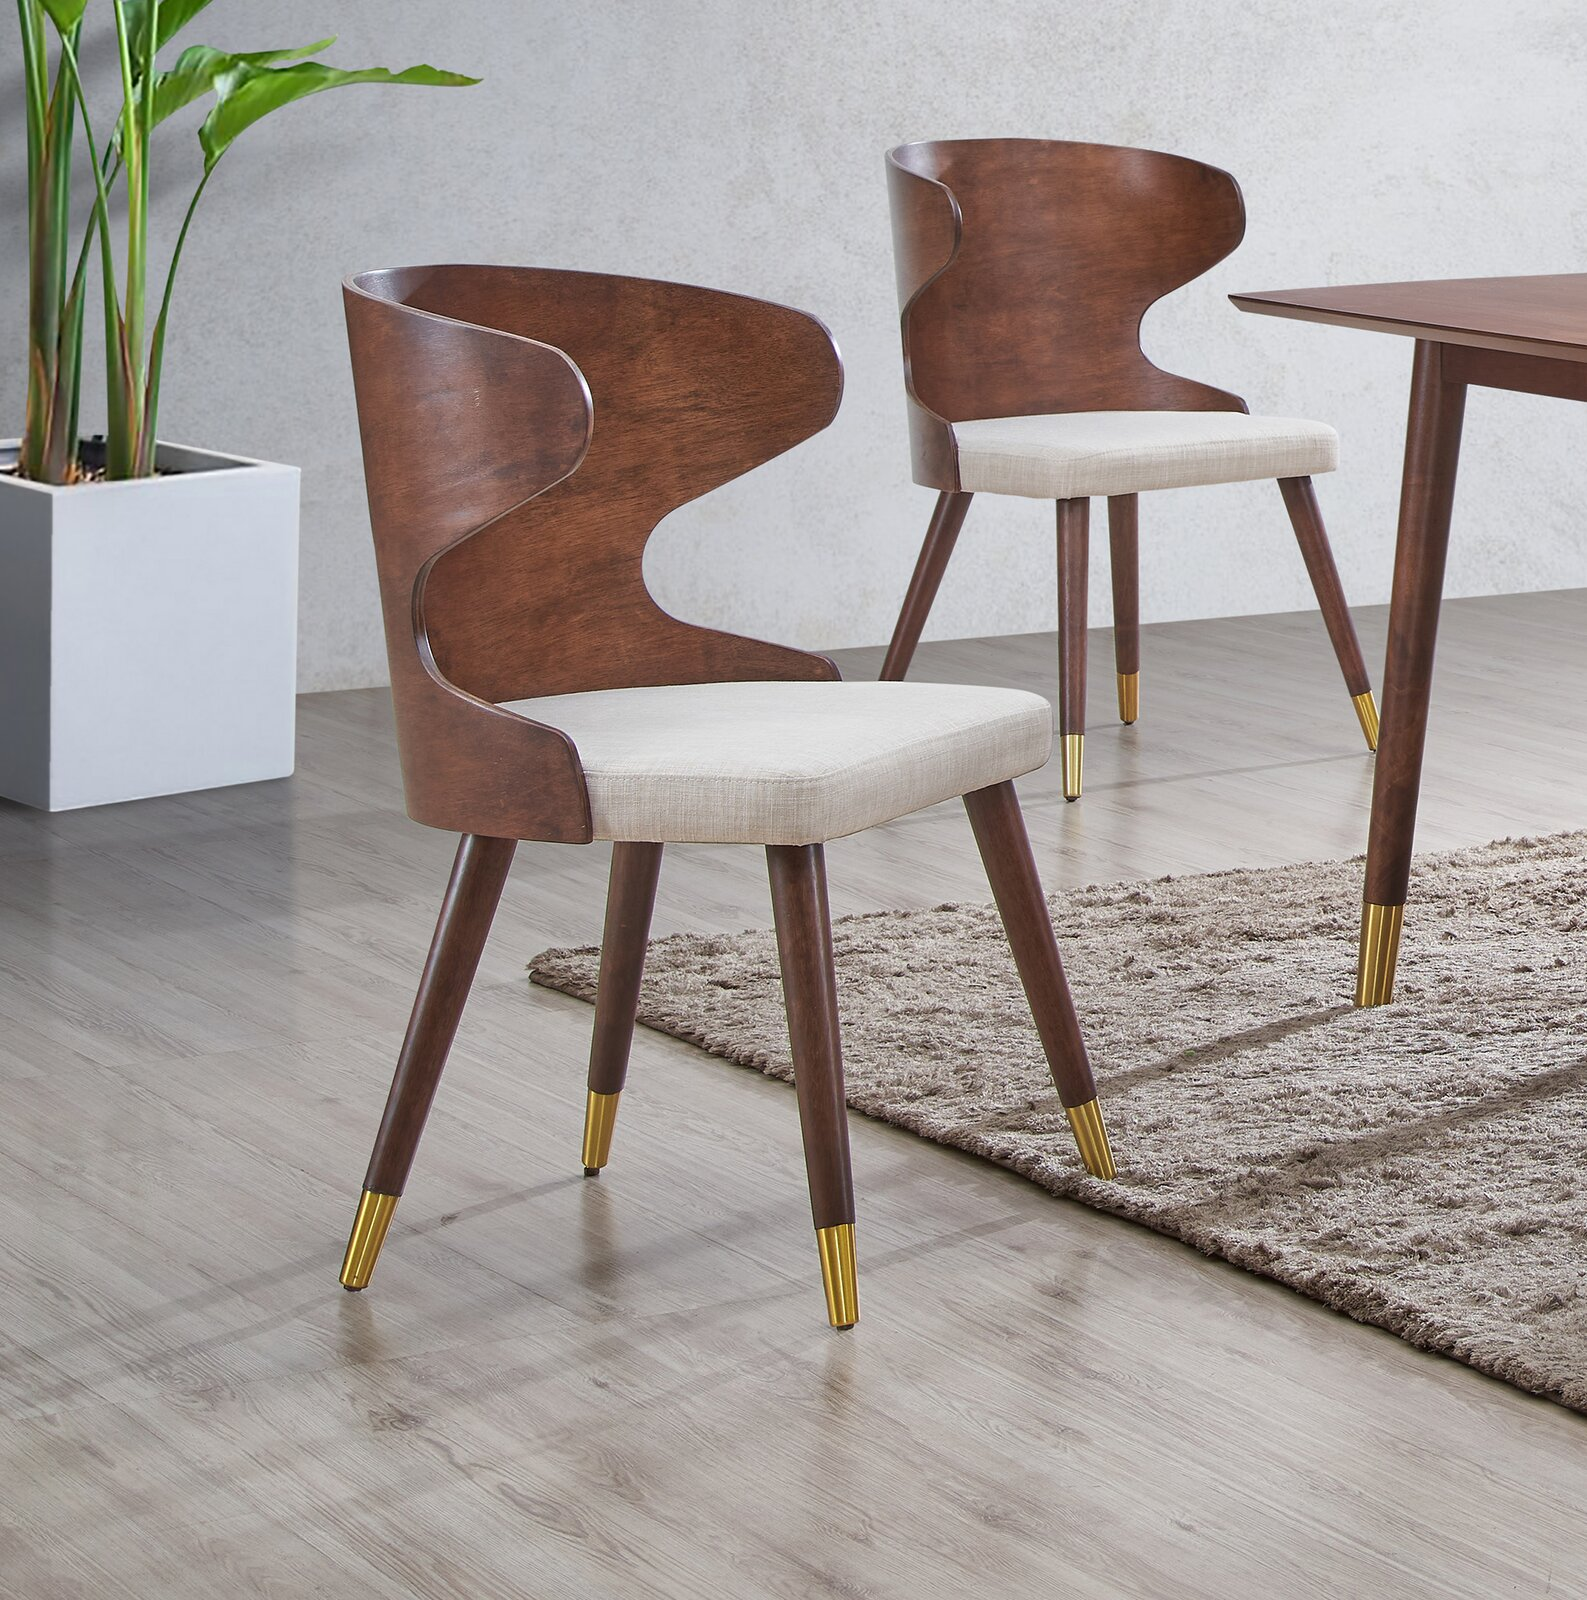 mid-century-modern-upholstered-seat-dining-chairs-molded-plywood-backrest-with-wingback-design-tapered-legs-gold-feet